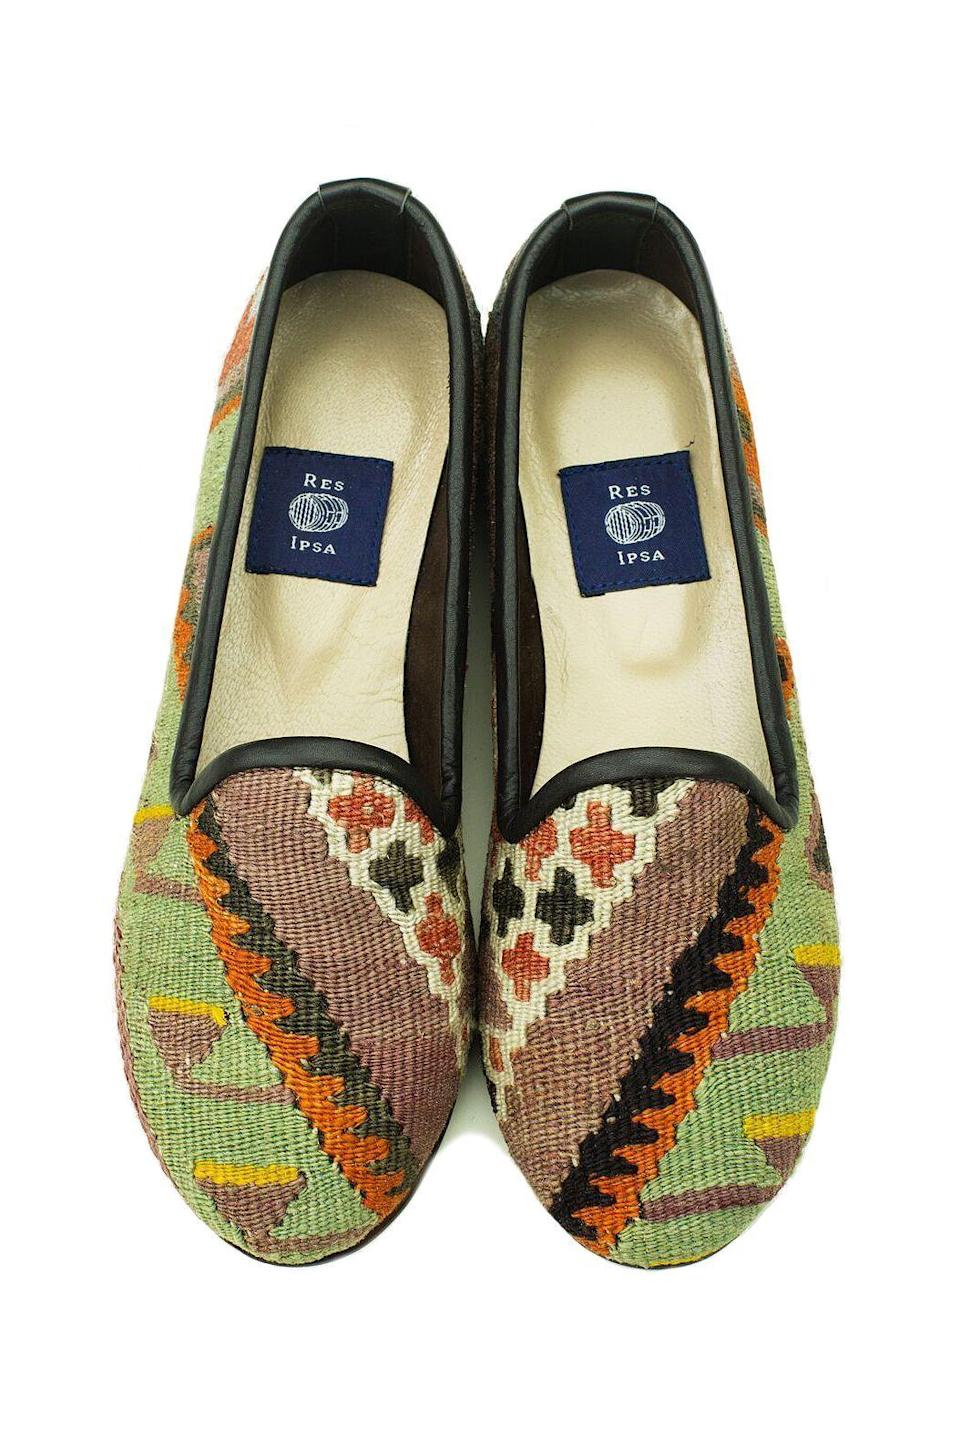 """<p><strong>Res Ipsa</strong></p><p>resipsausa.com</p><p><strong>$225.00</strong></p><p><a href=""""https://resipsausa.com/collections/womens-kilim-loafers/products/womens-kilim-loafer-6-18"""" rel=""""nofollow noopener"""" target=""""_blank"""" data-ylk=""""slk:SHOP IT"""" class=""""link rapid-noclick-resp"""">SHOP IT</a></p><p>These one-of-a-kind loafers assembled from Turkish rugs somehow seem to go with everything and guarantee you a look that no one else can cop.</p>"""